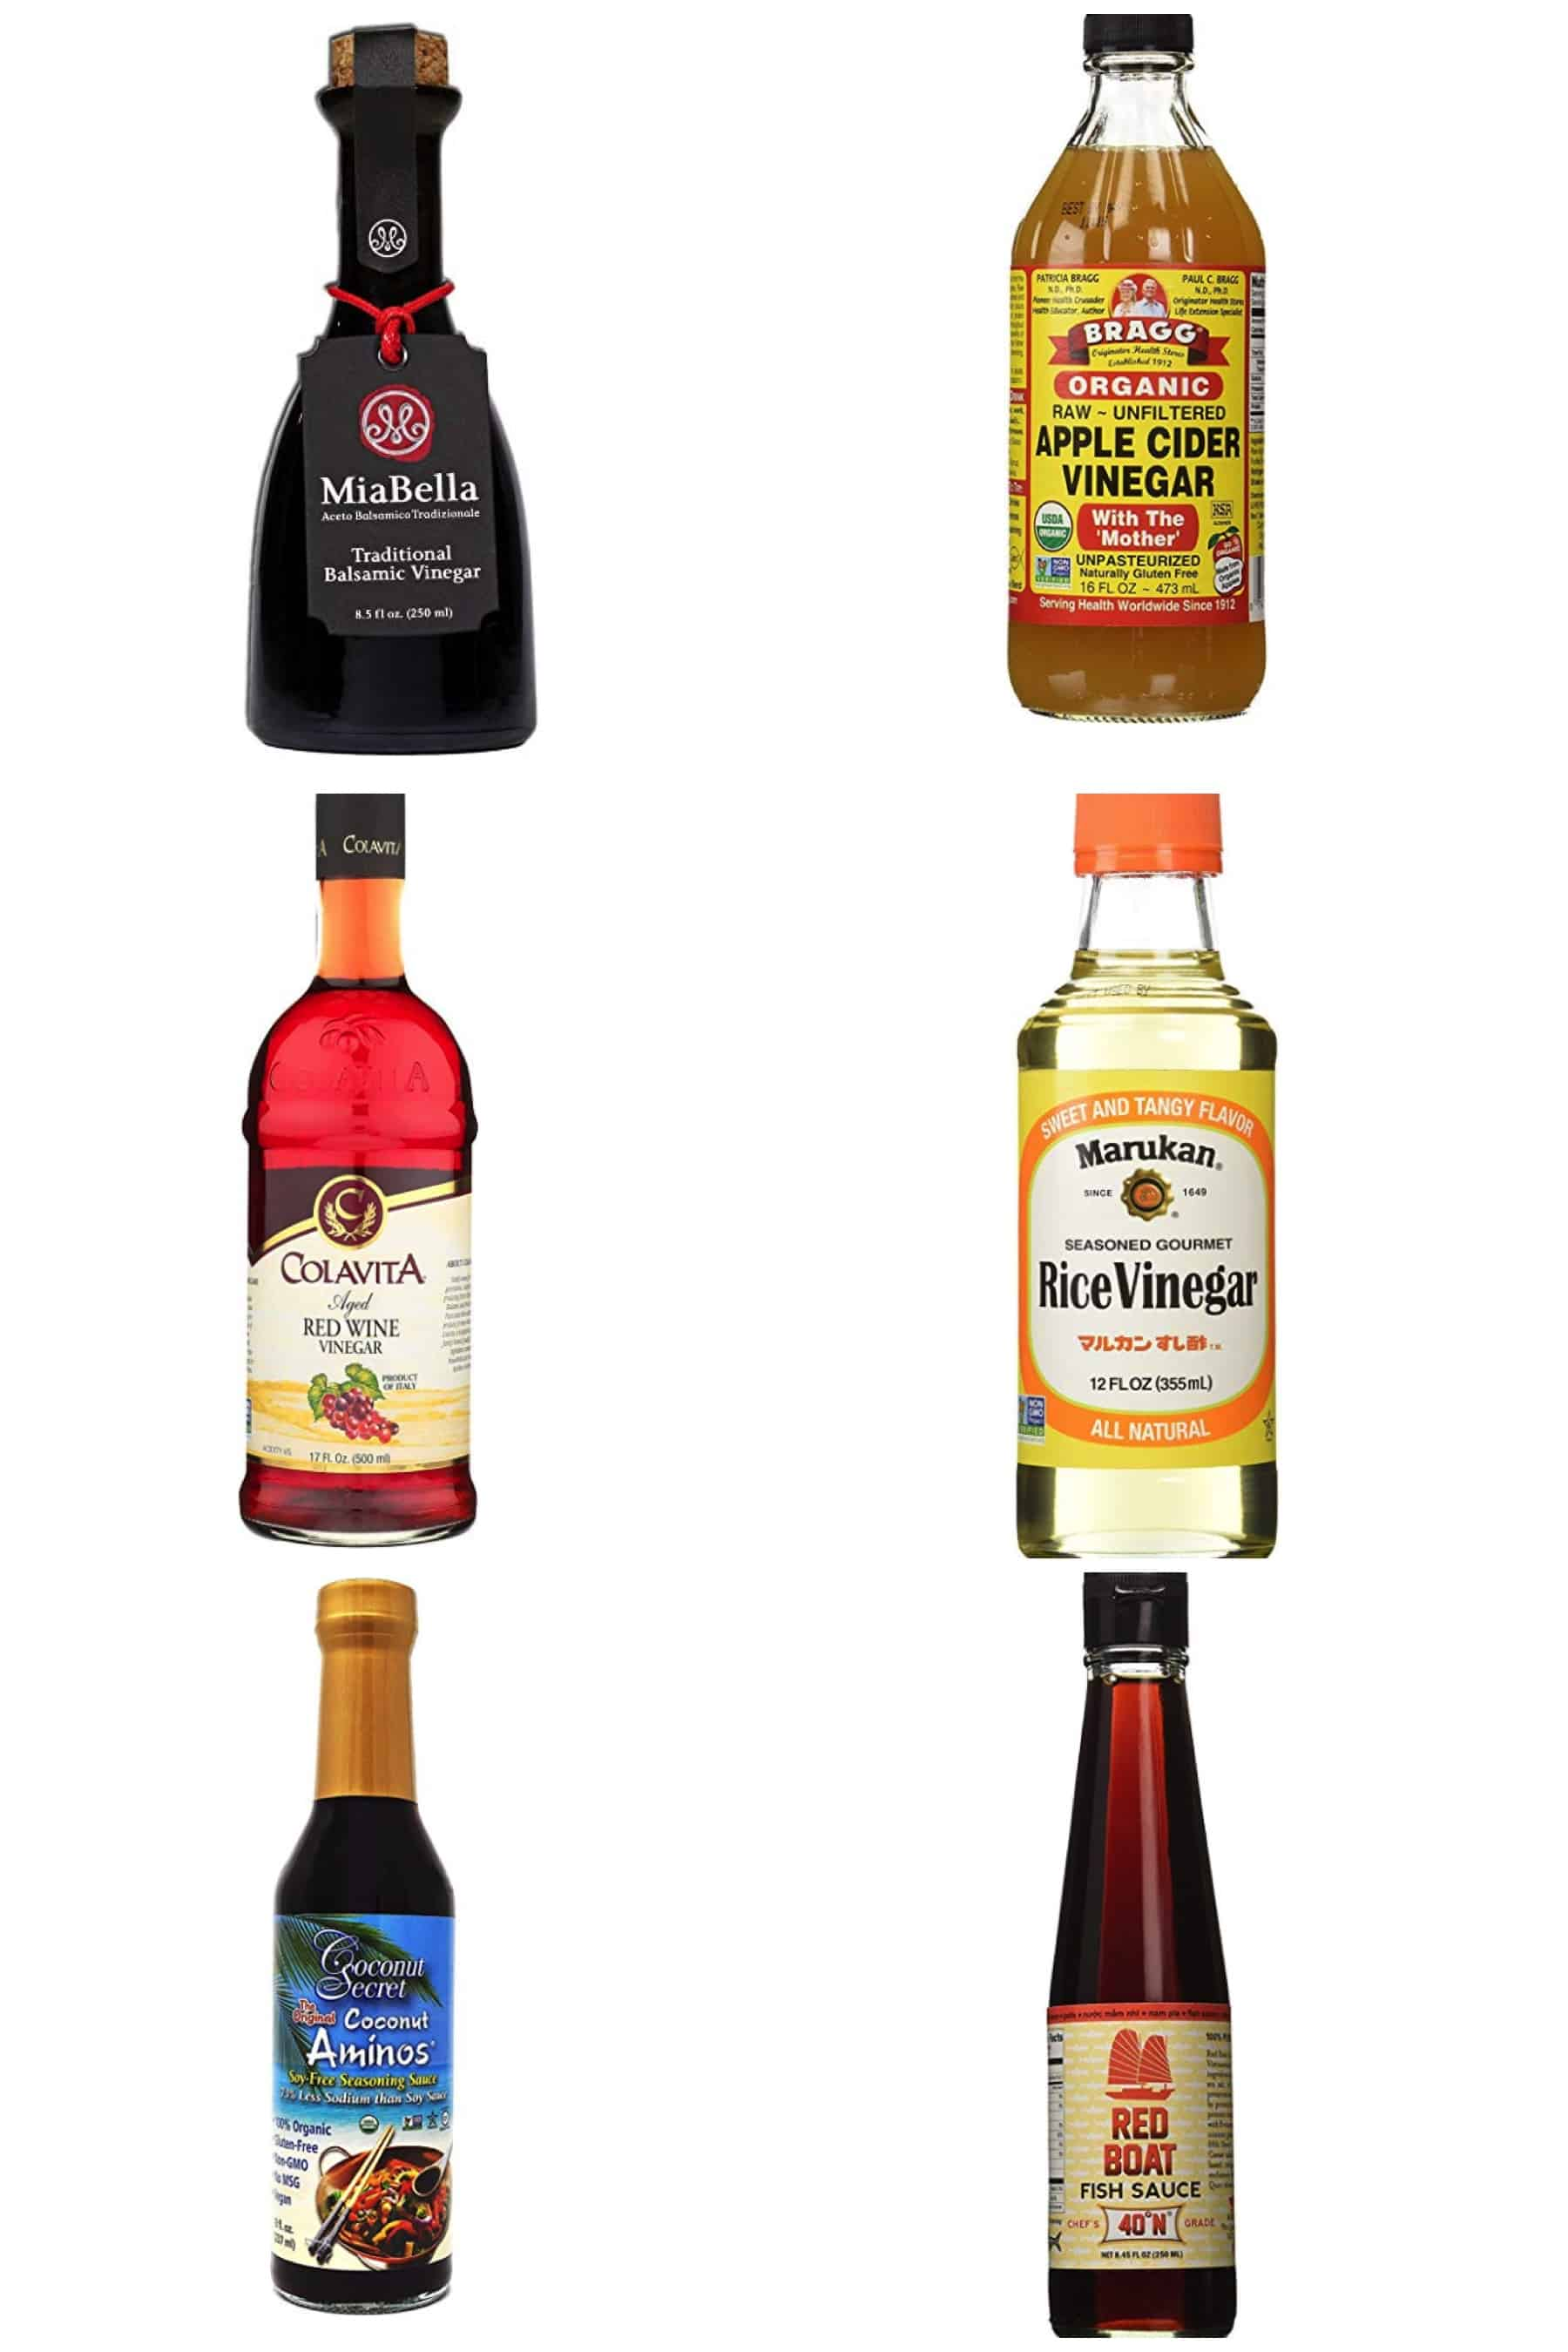 Cucina & Amore White Balsamic Vinegar The Ultimate Whole30 Amazon Shopping Guide Tastes Lovely